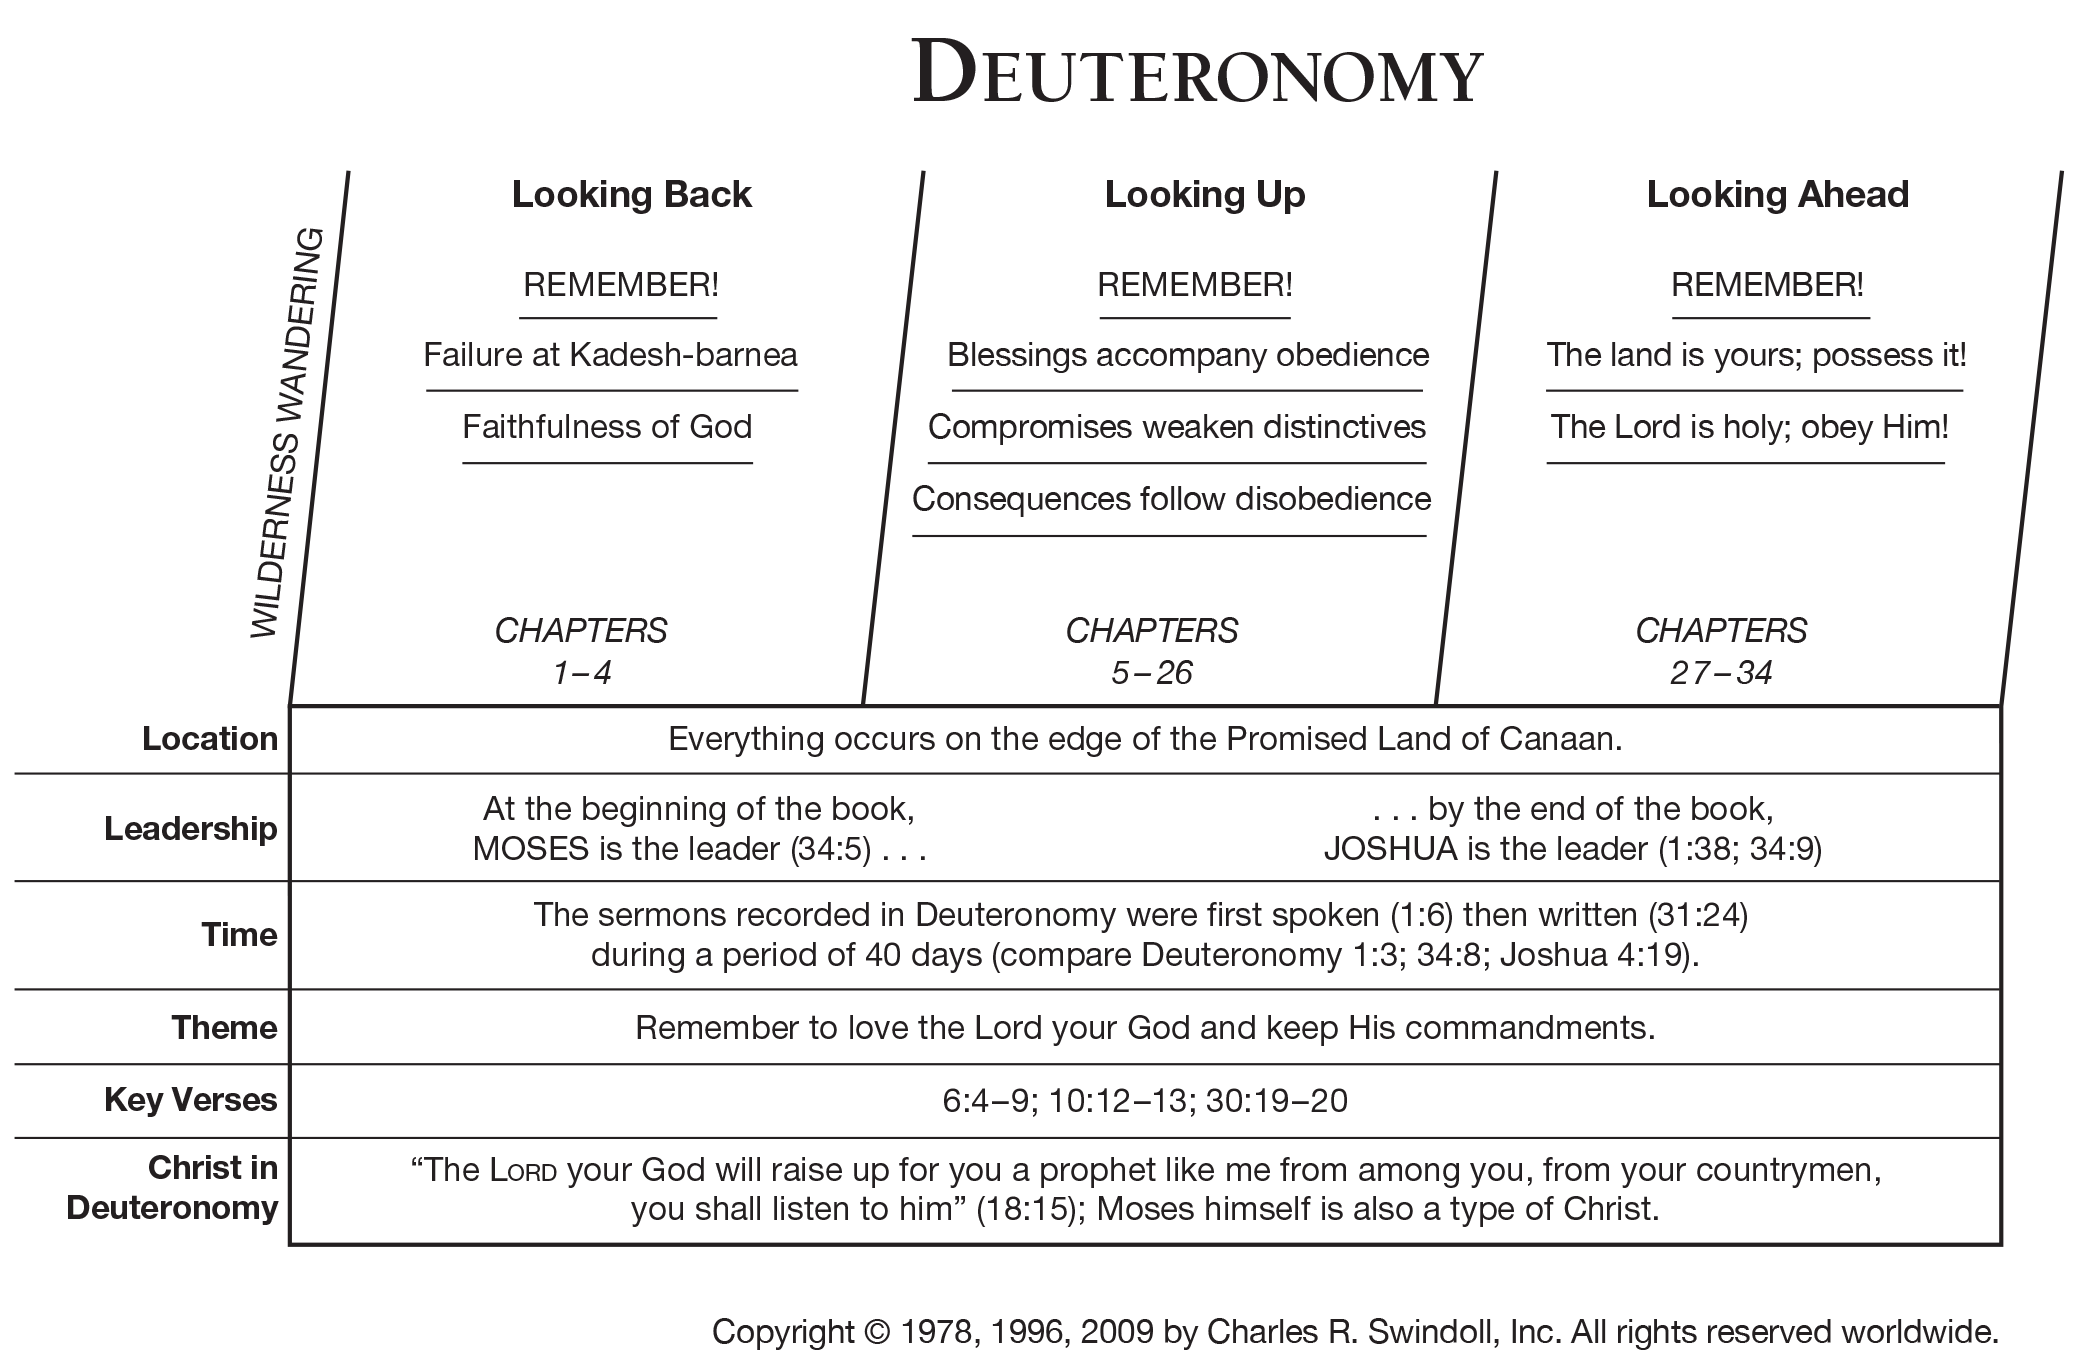 Book Of Deuteronomy Overview